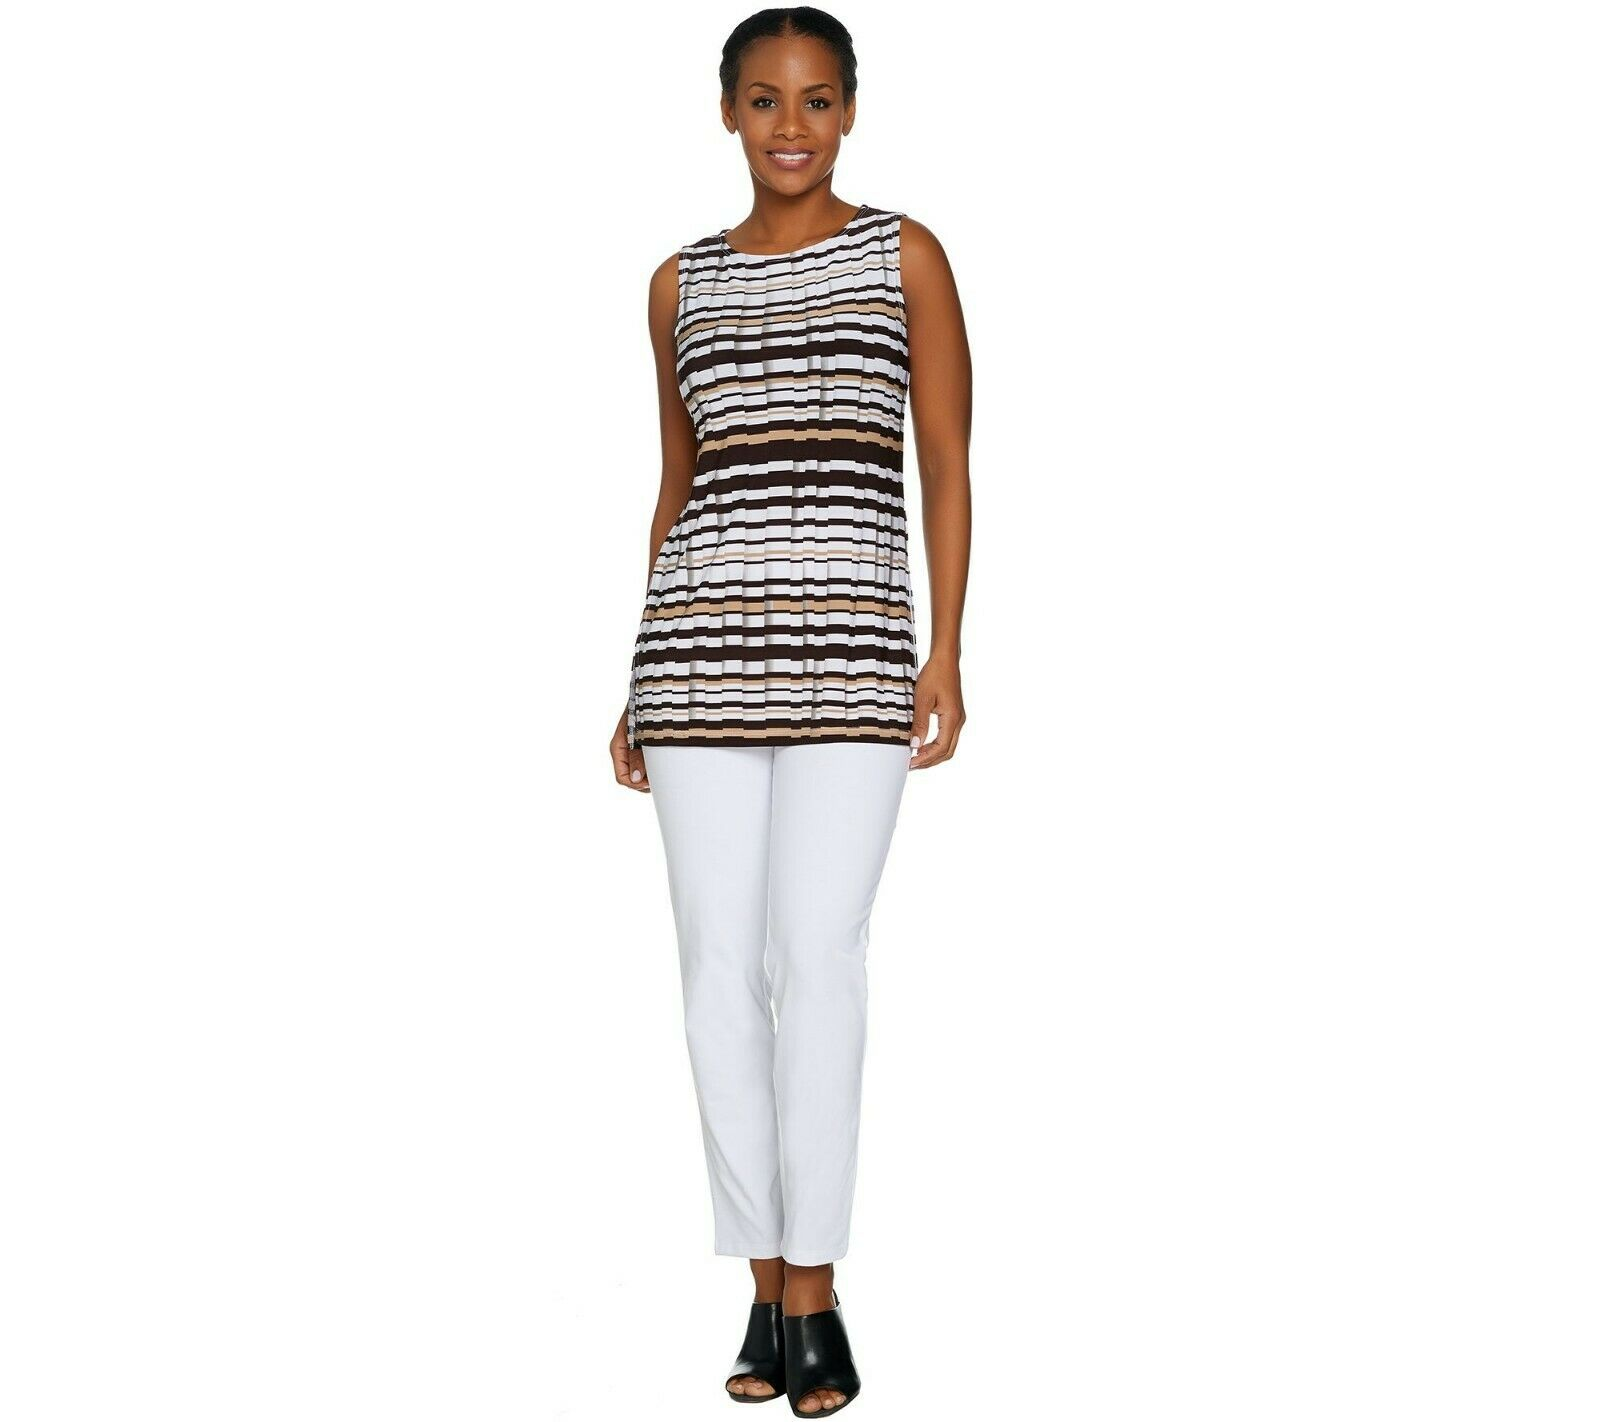 Women with Control Petite Ankle Pants & Printed Tunic Set White PM Size QVC